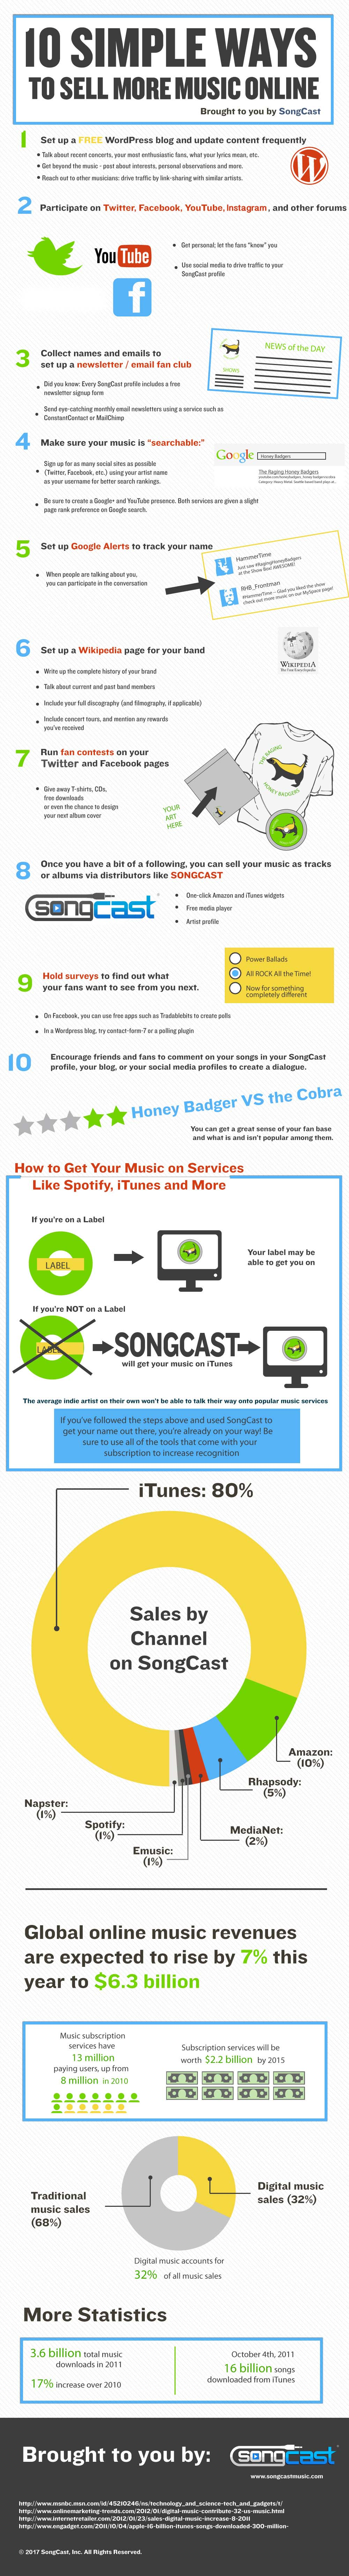 10 Simple Ways to Sell More Music Online